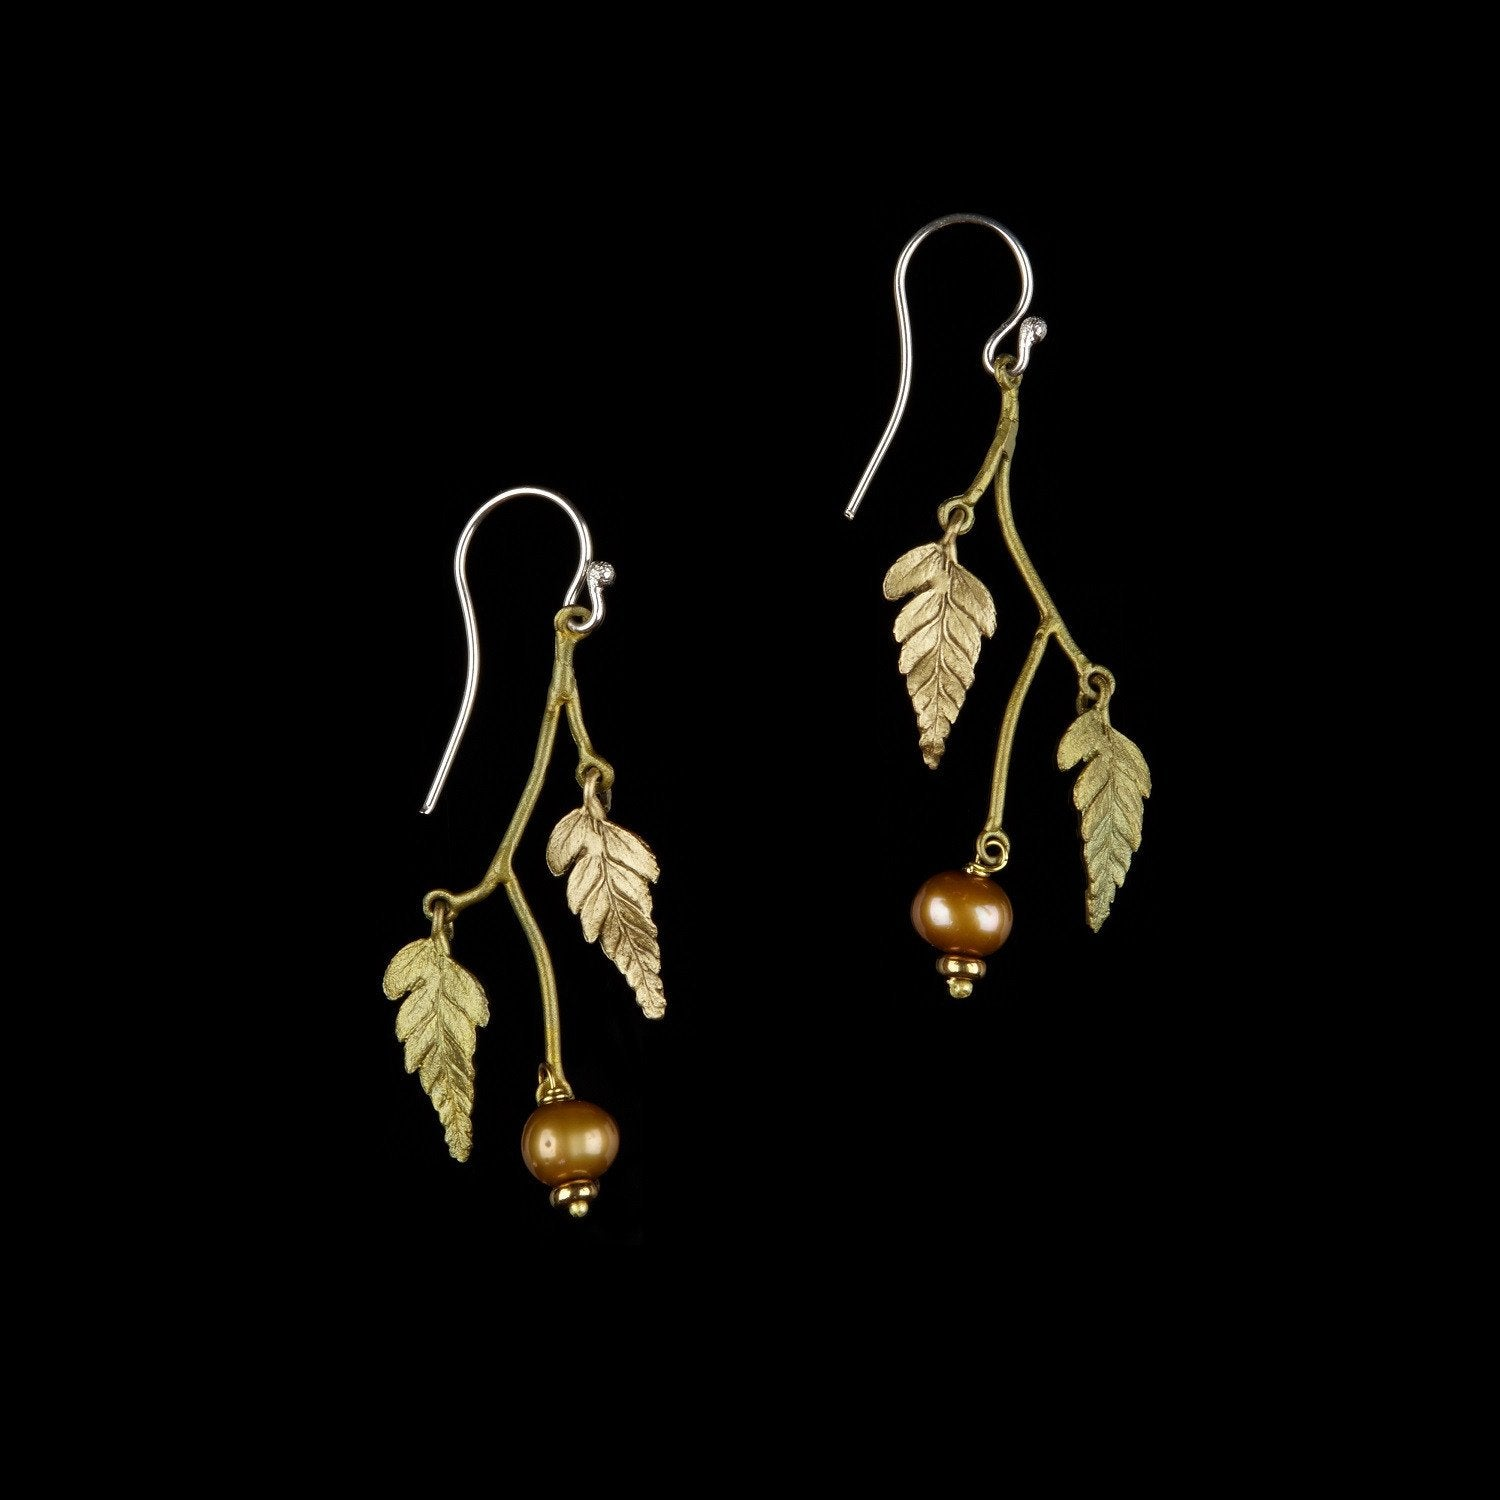 Fern Earrings - Double Leaf Dangle with Pearl